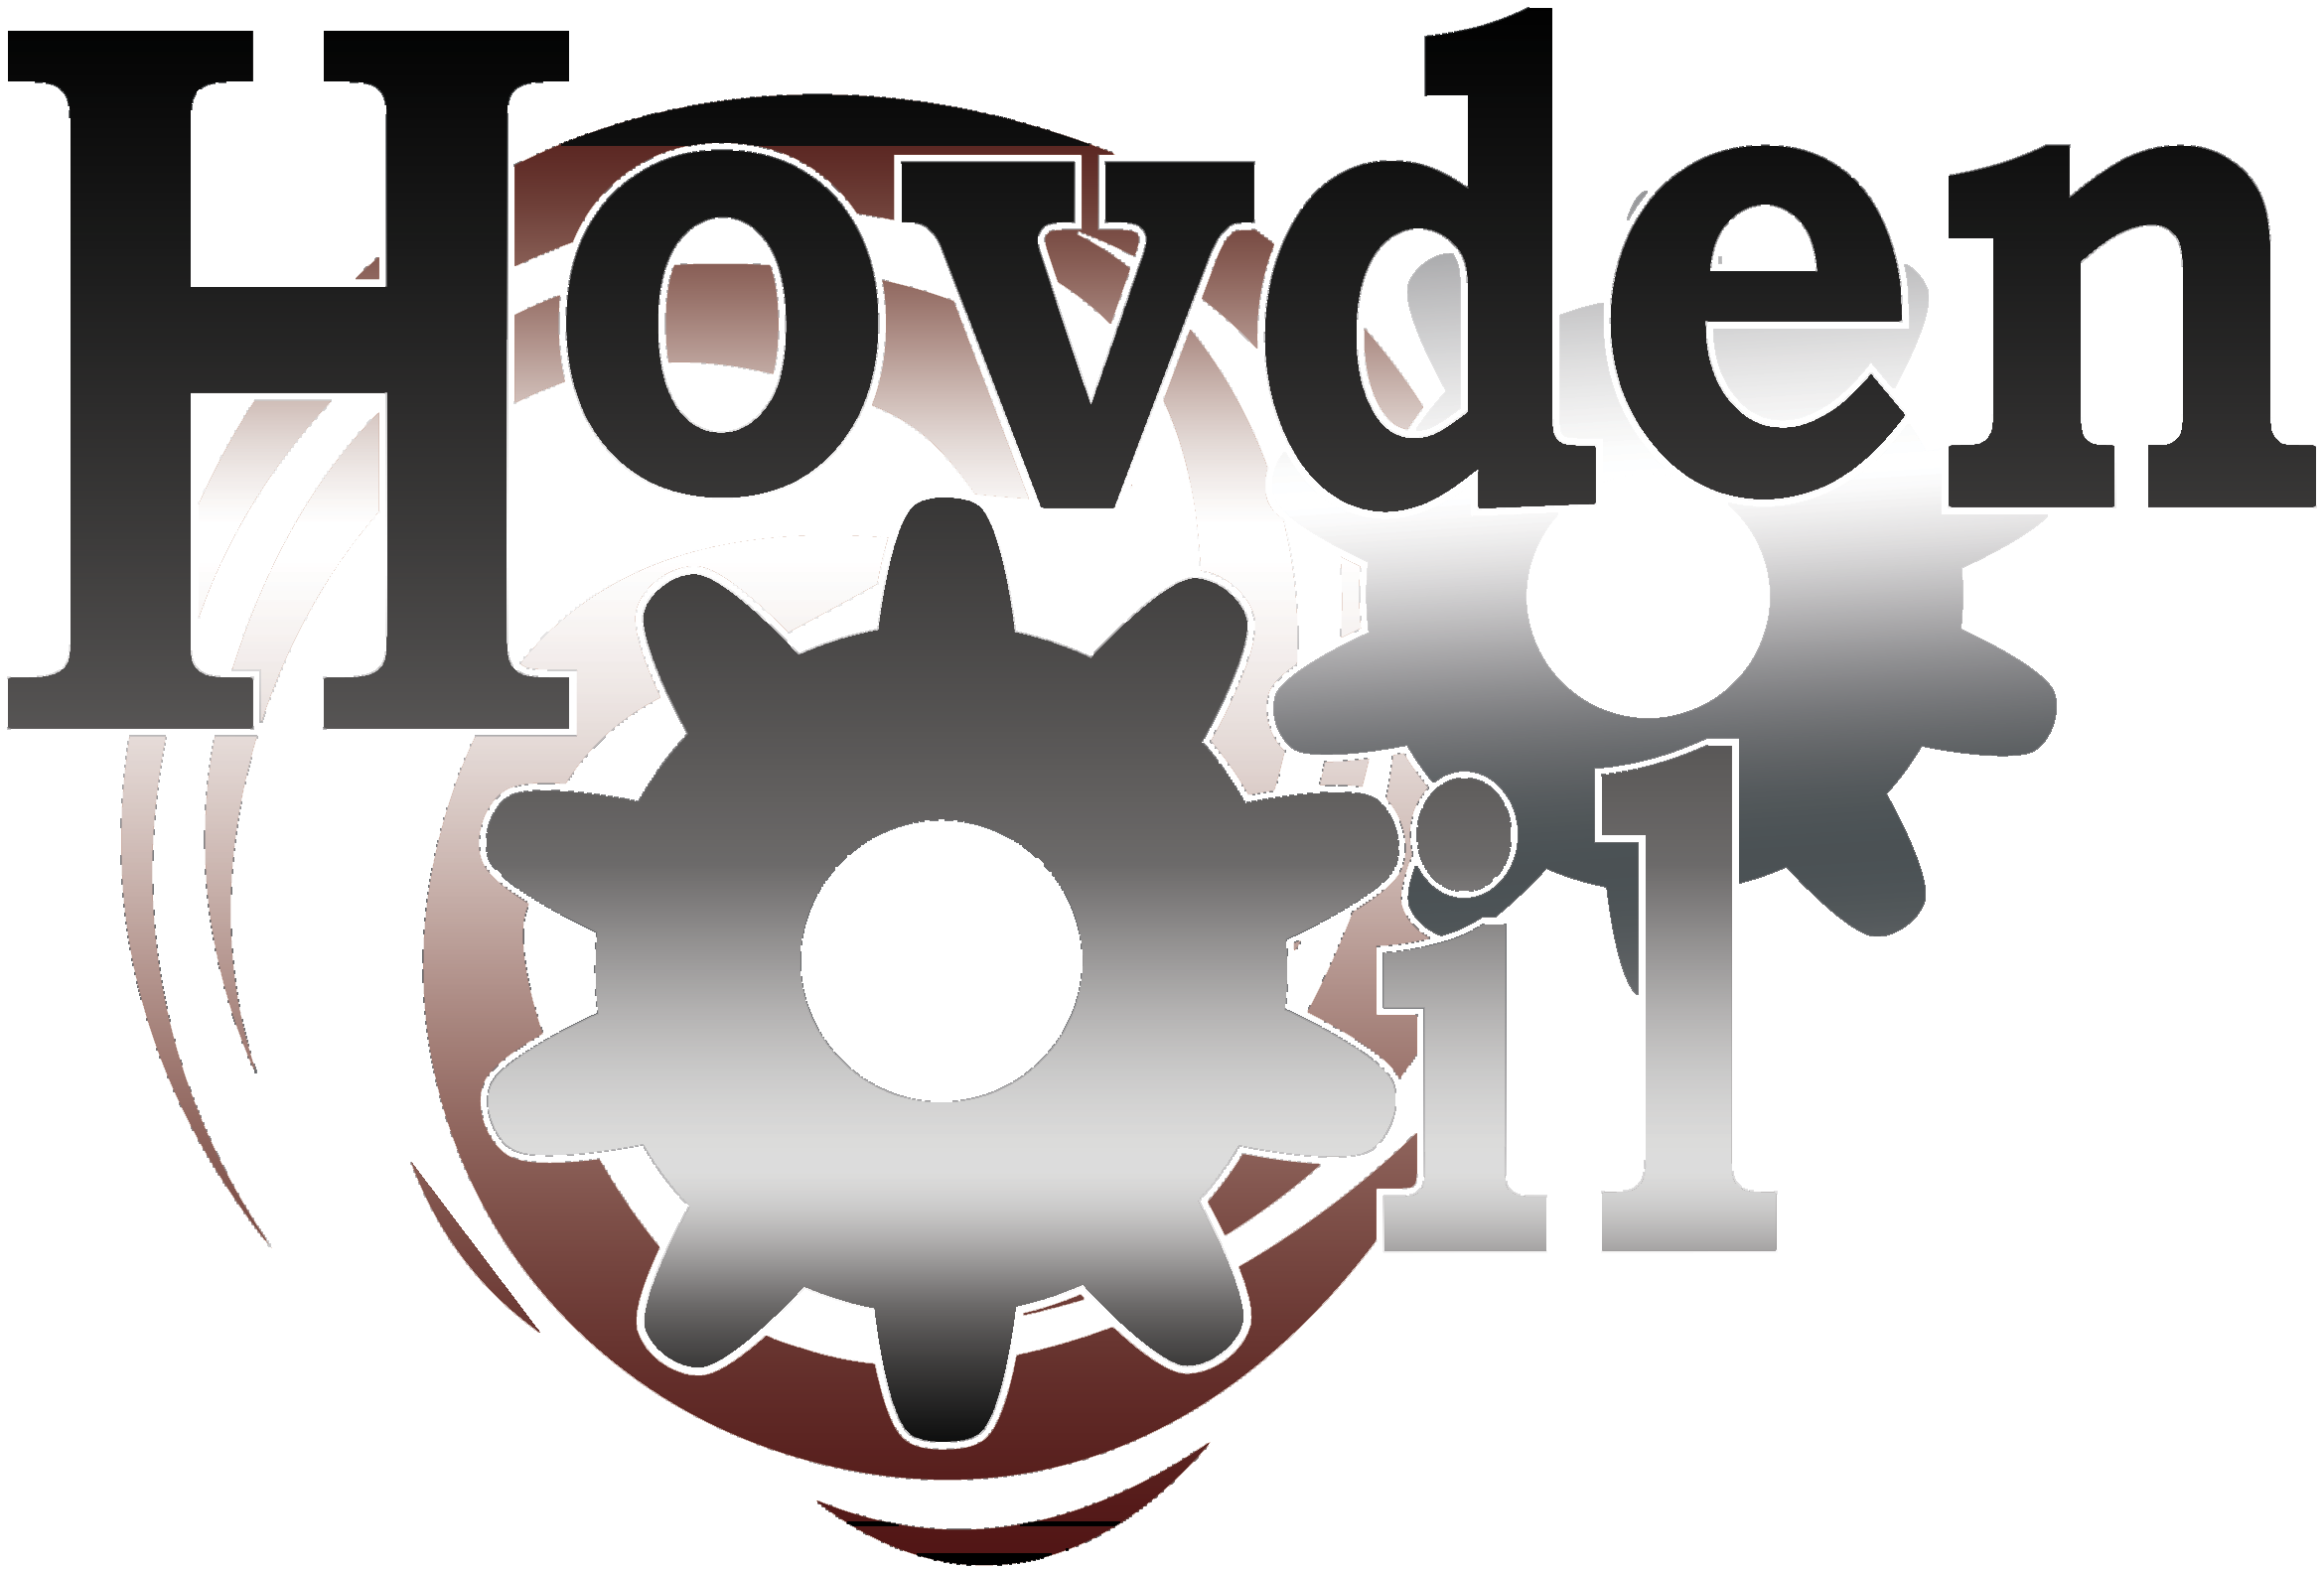 HovdenOilLogoHat_Metalic.png